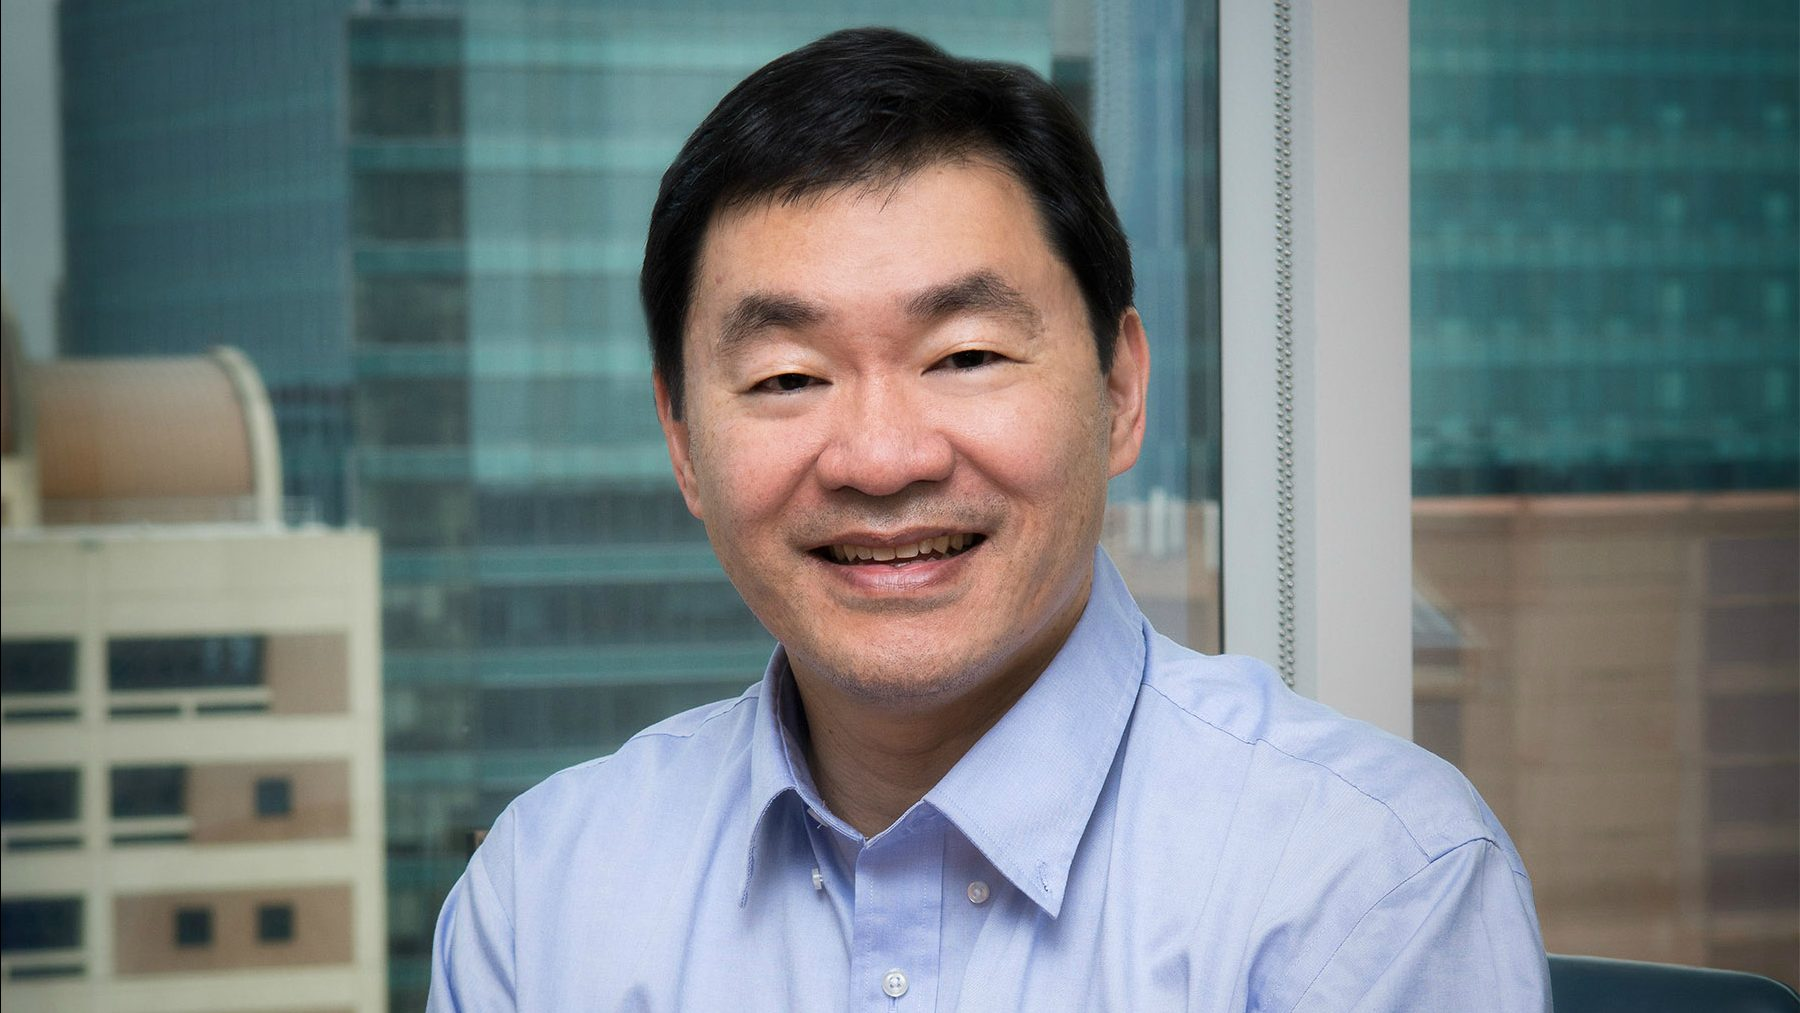 Cancerwise blog post: Patrick Hwu, M.D., shares five things you should know about cancer clinical trials and clinical trial phases